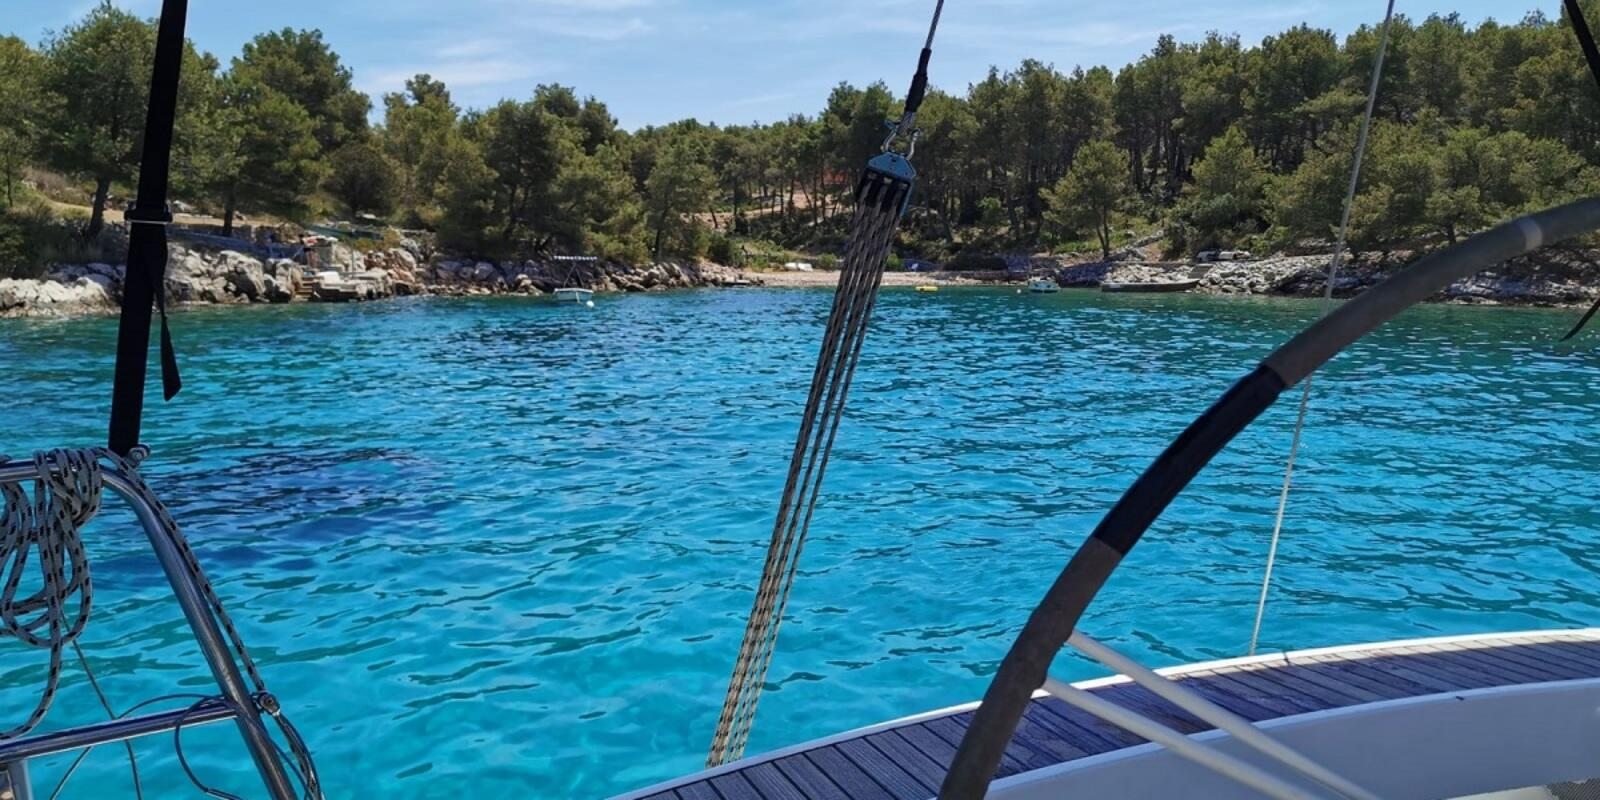 Private sailing tour - Discover the best of central Dalmatia